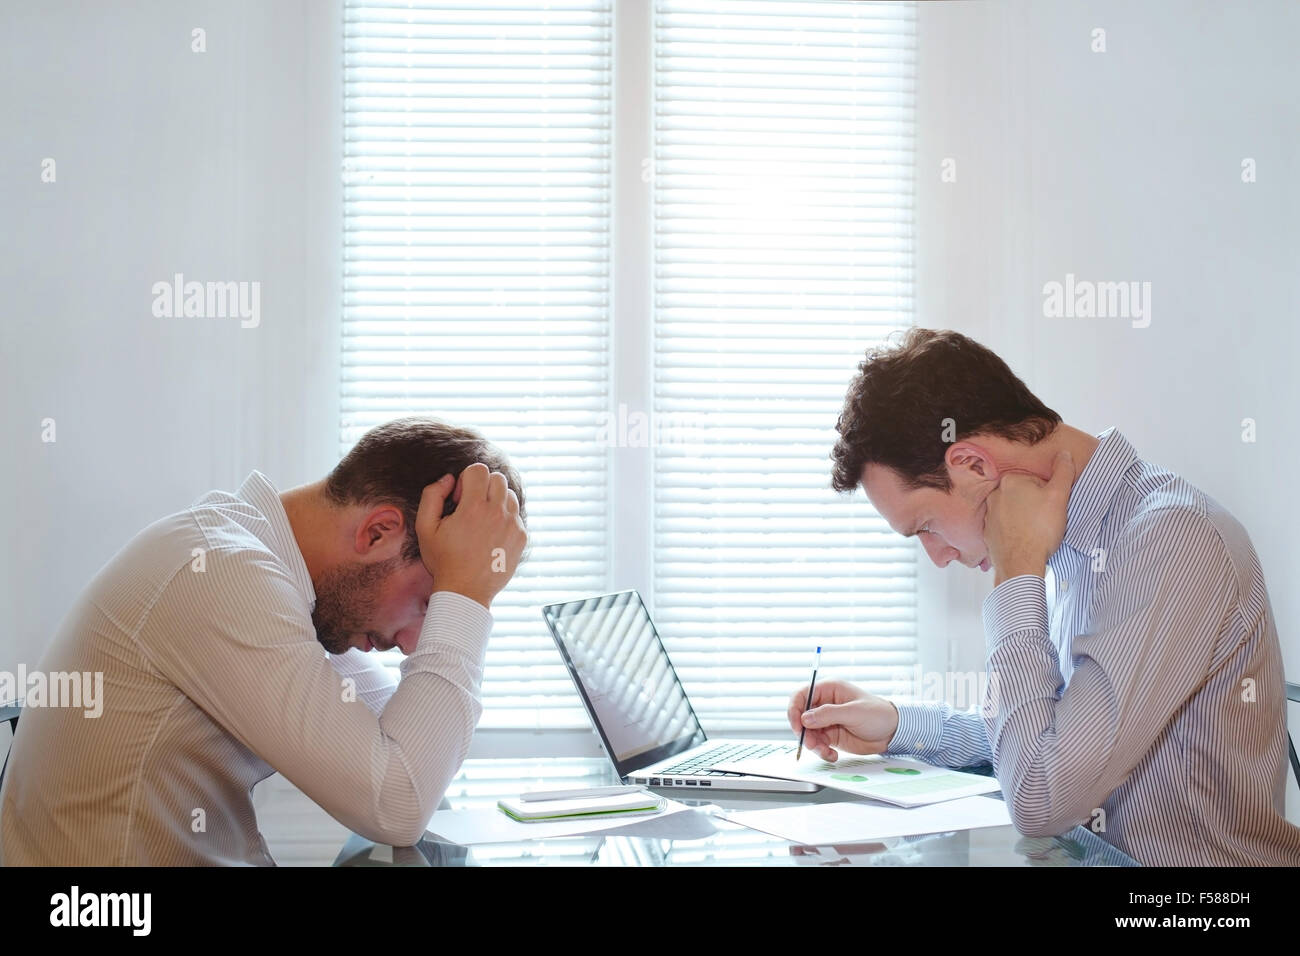 tired business men, financial crisis in business - Stock Image